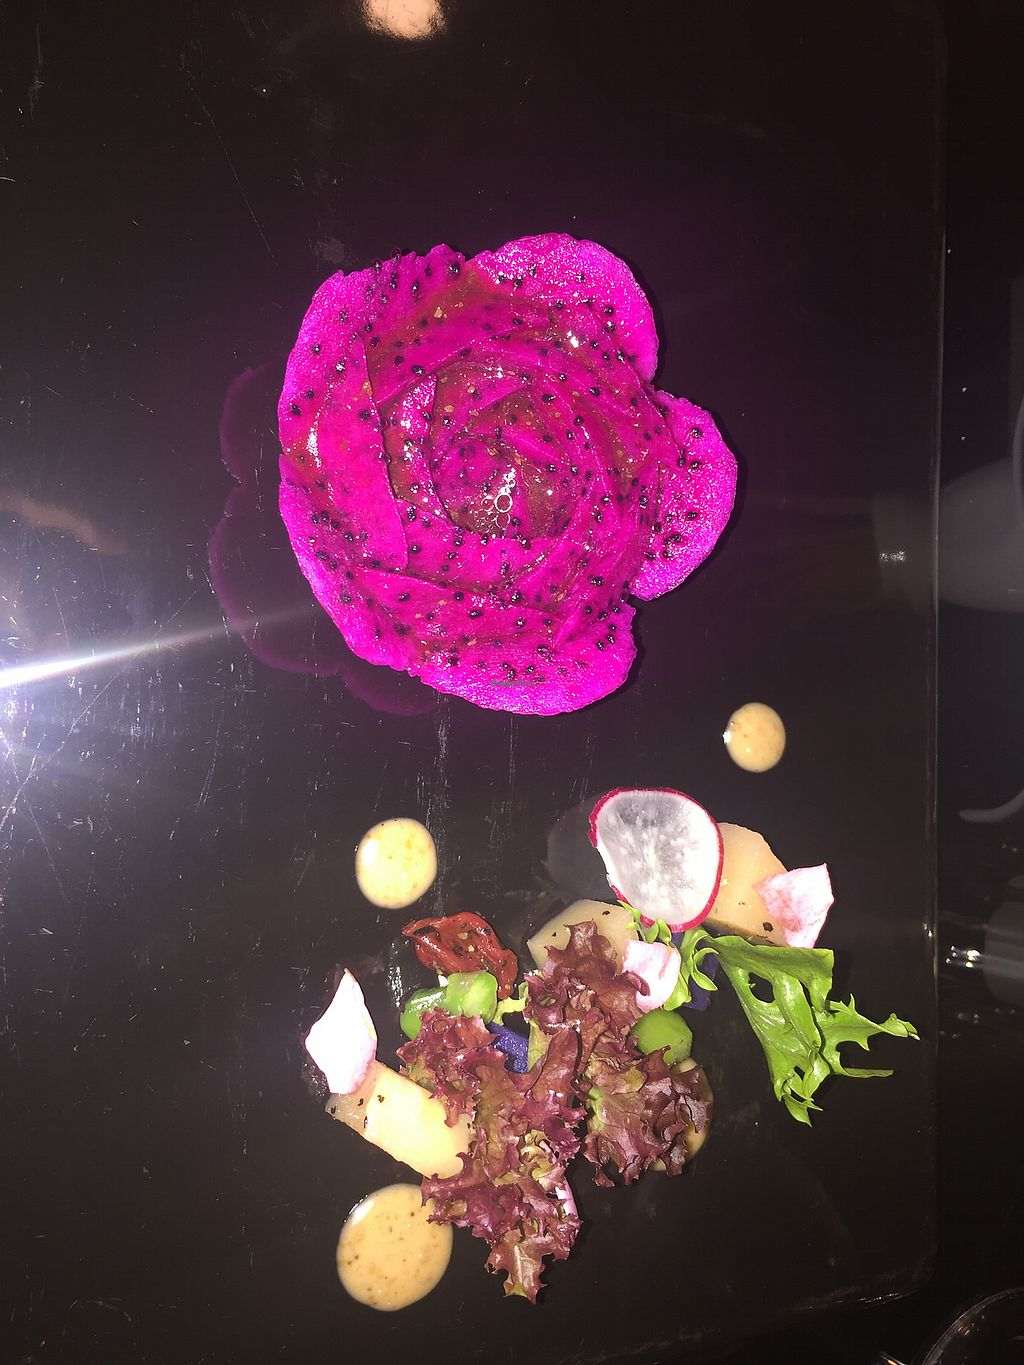 """Photo of Joie Restaurant  by <a href=""""/members/profile/WFPB52"""">WFPB52</a> <br/>Dragon Fruit Lotus <br/> February 8, 2018  - <a href='/contact/abuse/image/54966/356439'>Report</a>"""